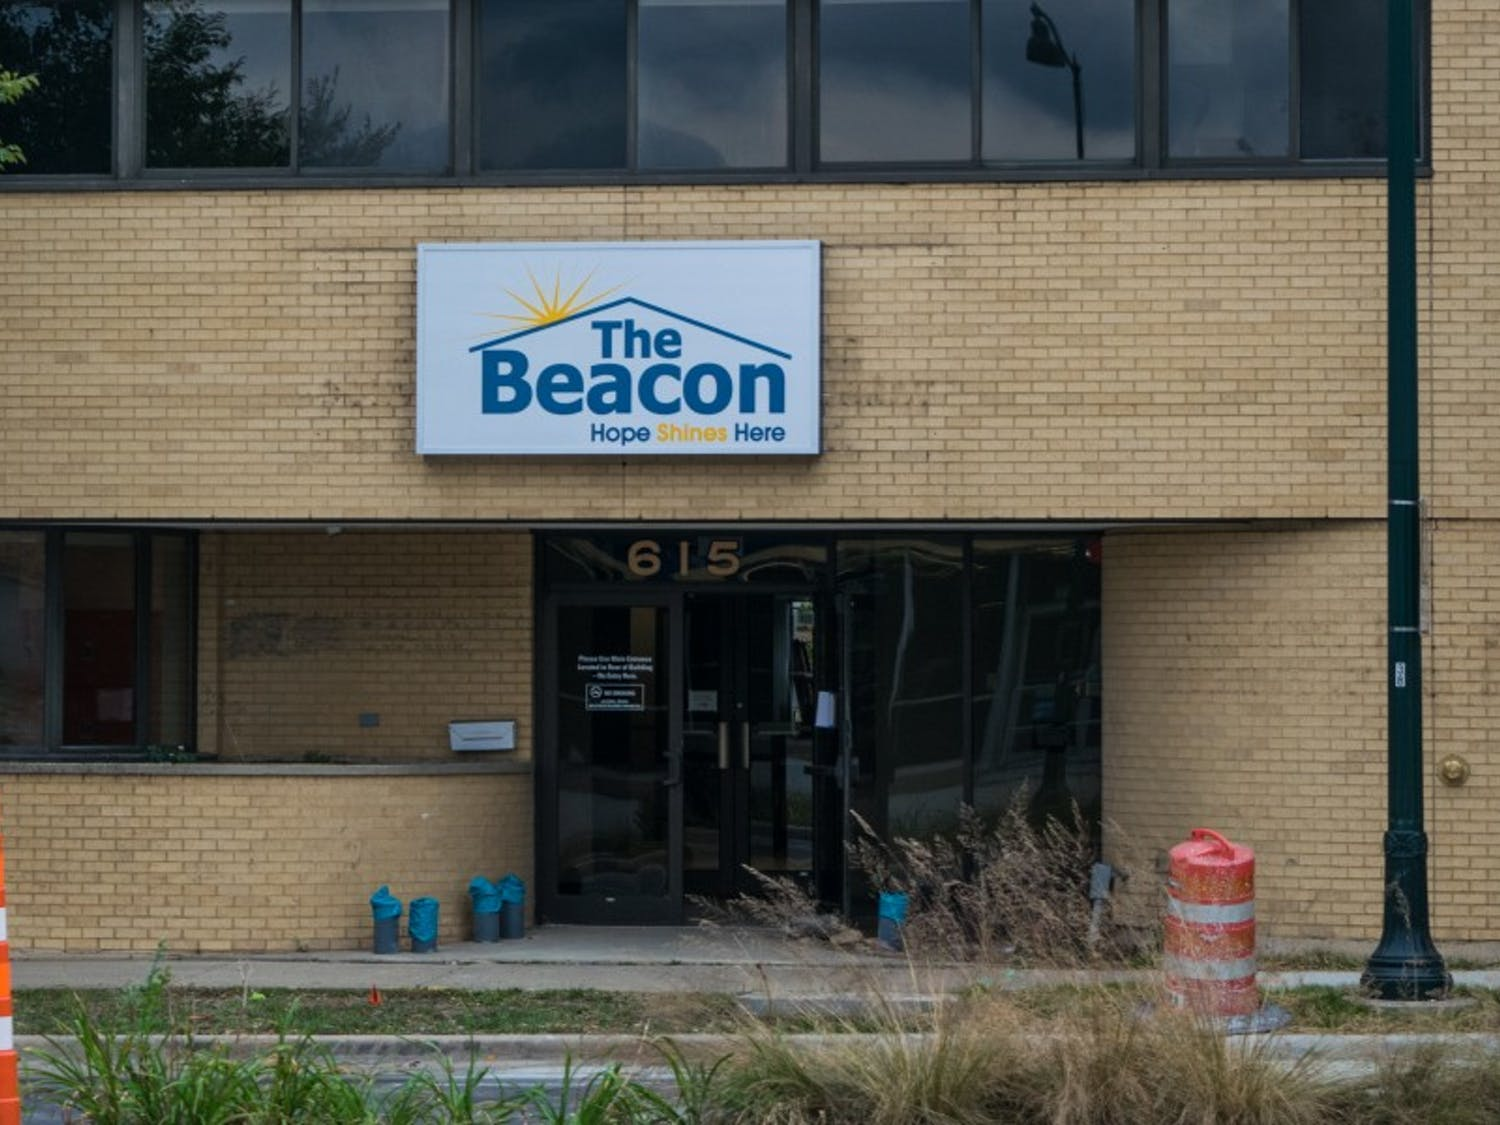 The Beacon, Madison's new homeless day resource center, could receive additional funds from the city if a budget amendment is accepted.